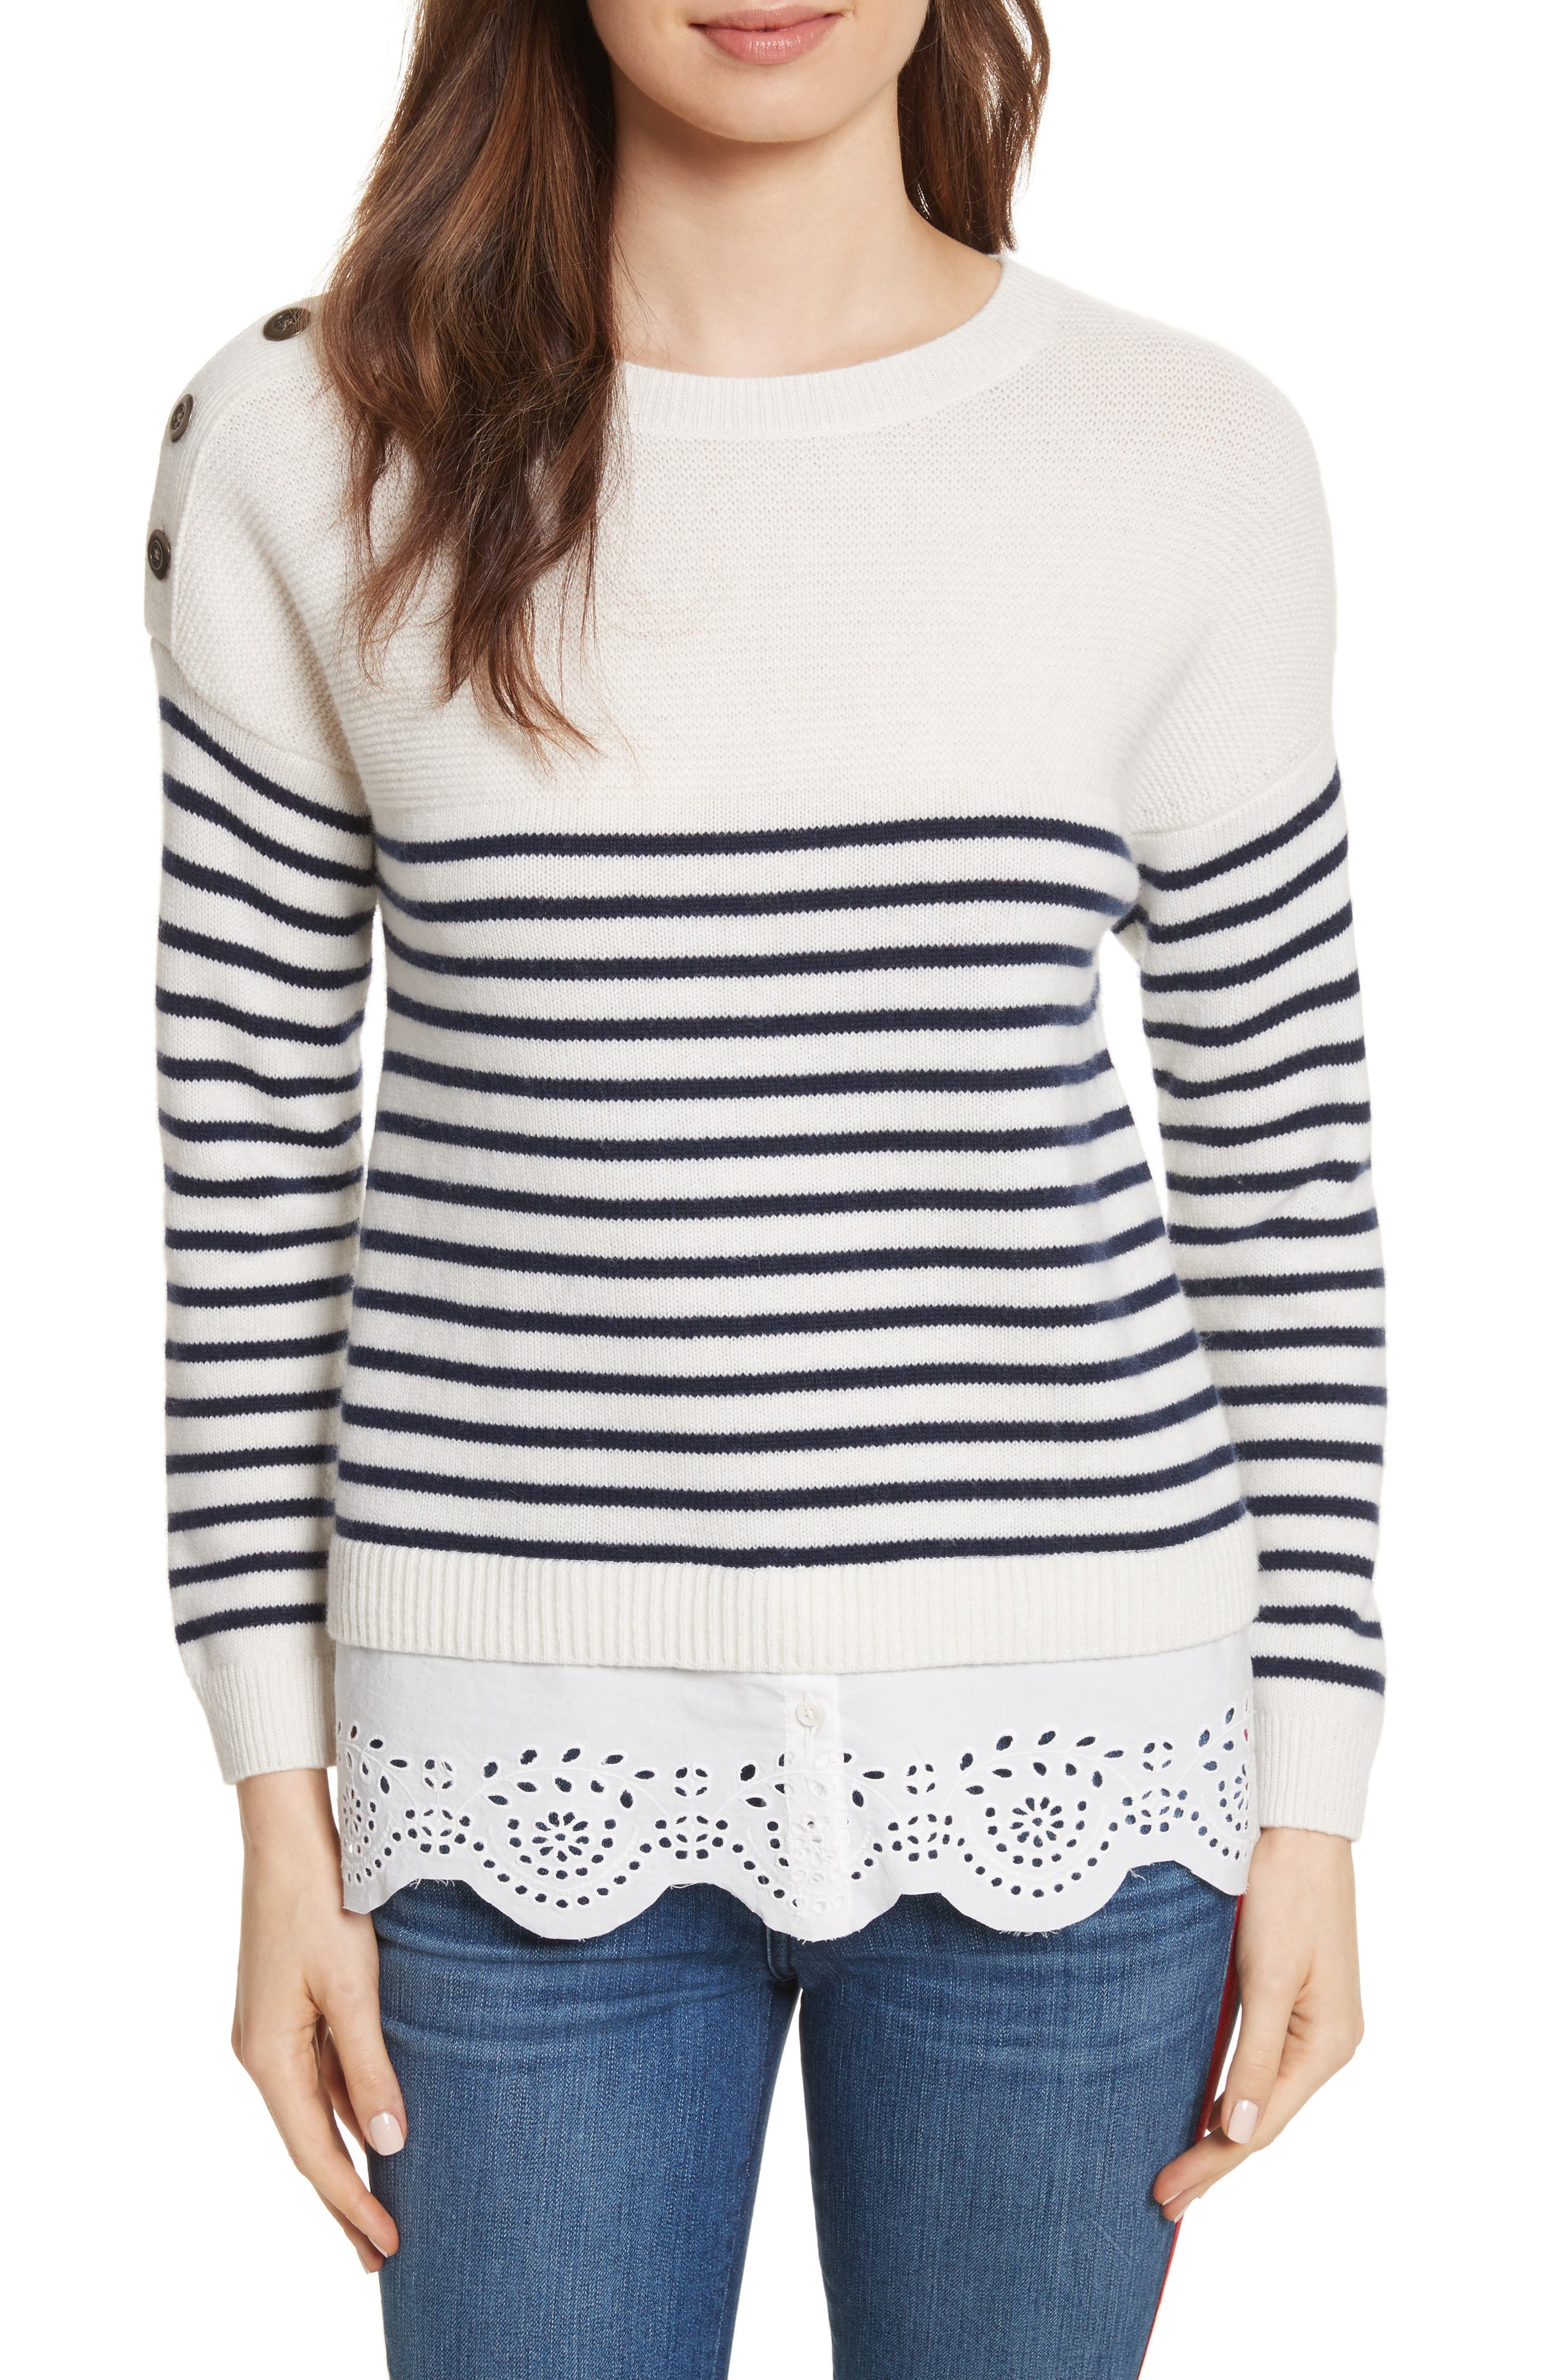 Aefre Woven Trim Wool & Cashmere Sweater,                             Main thumbnail 1, color,                             029